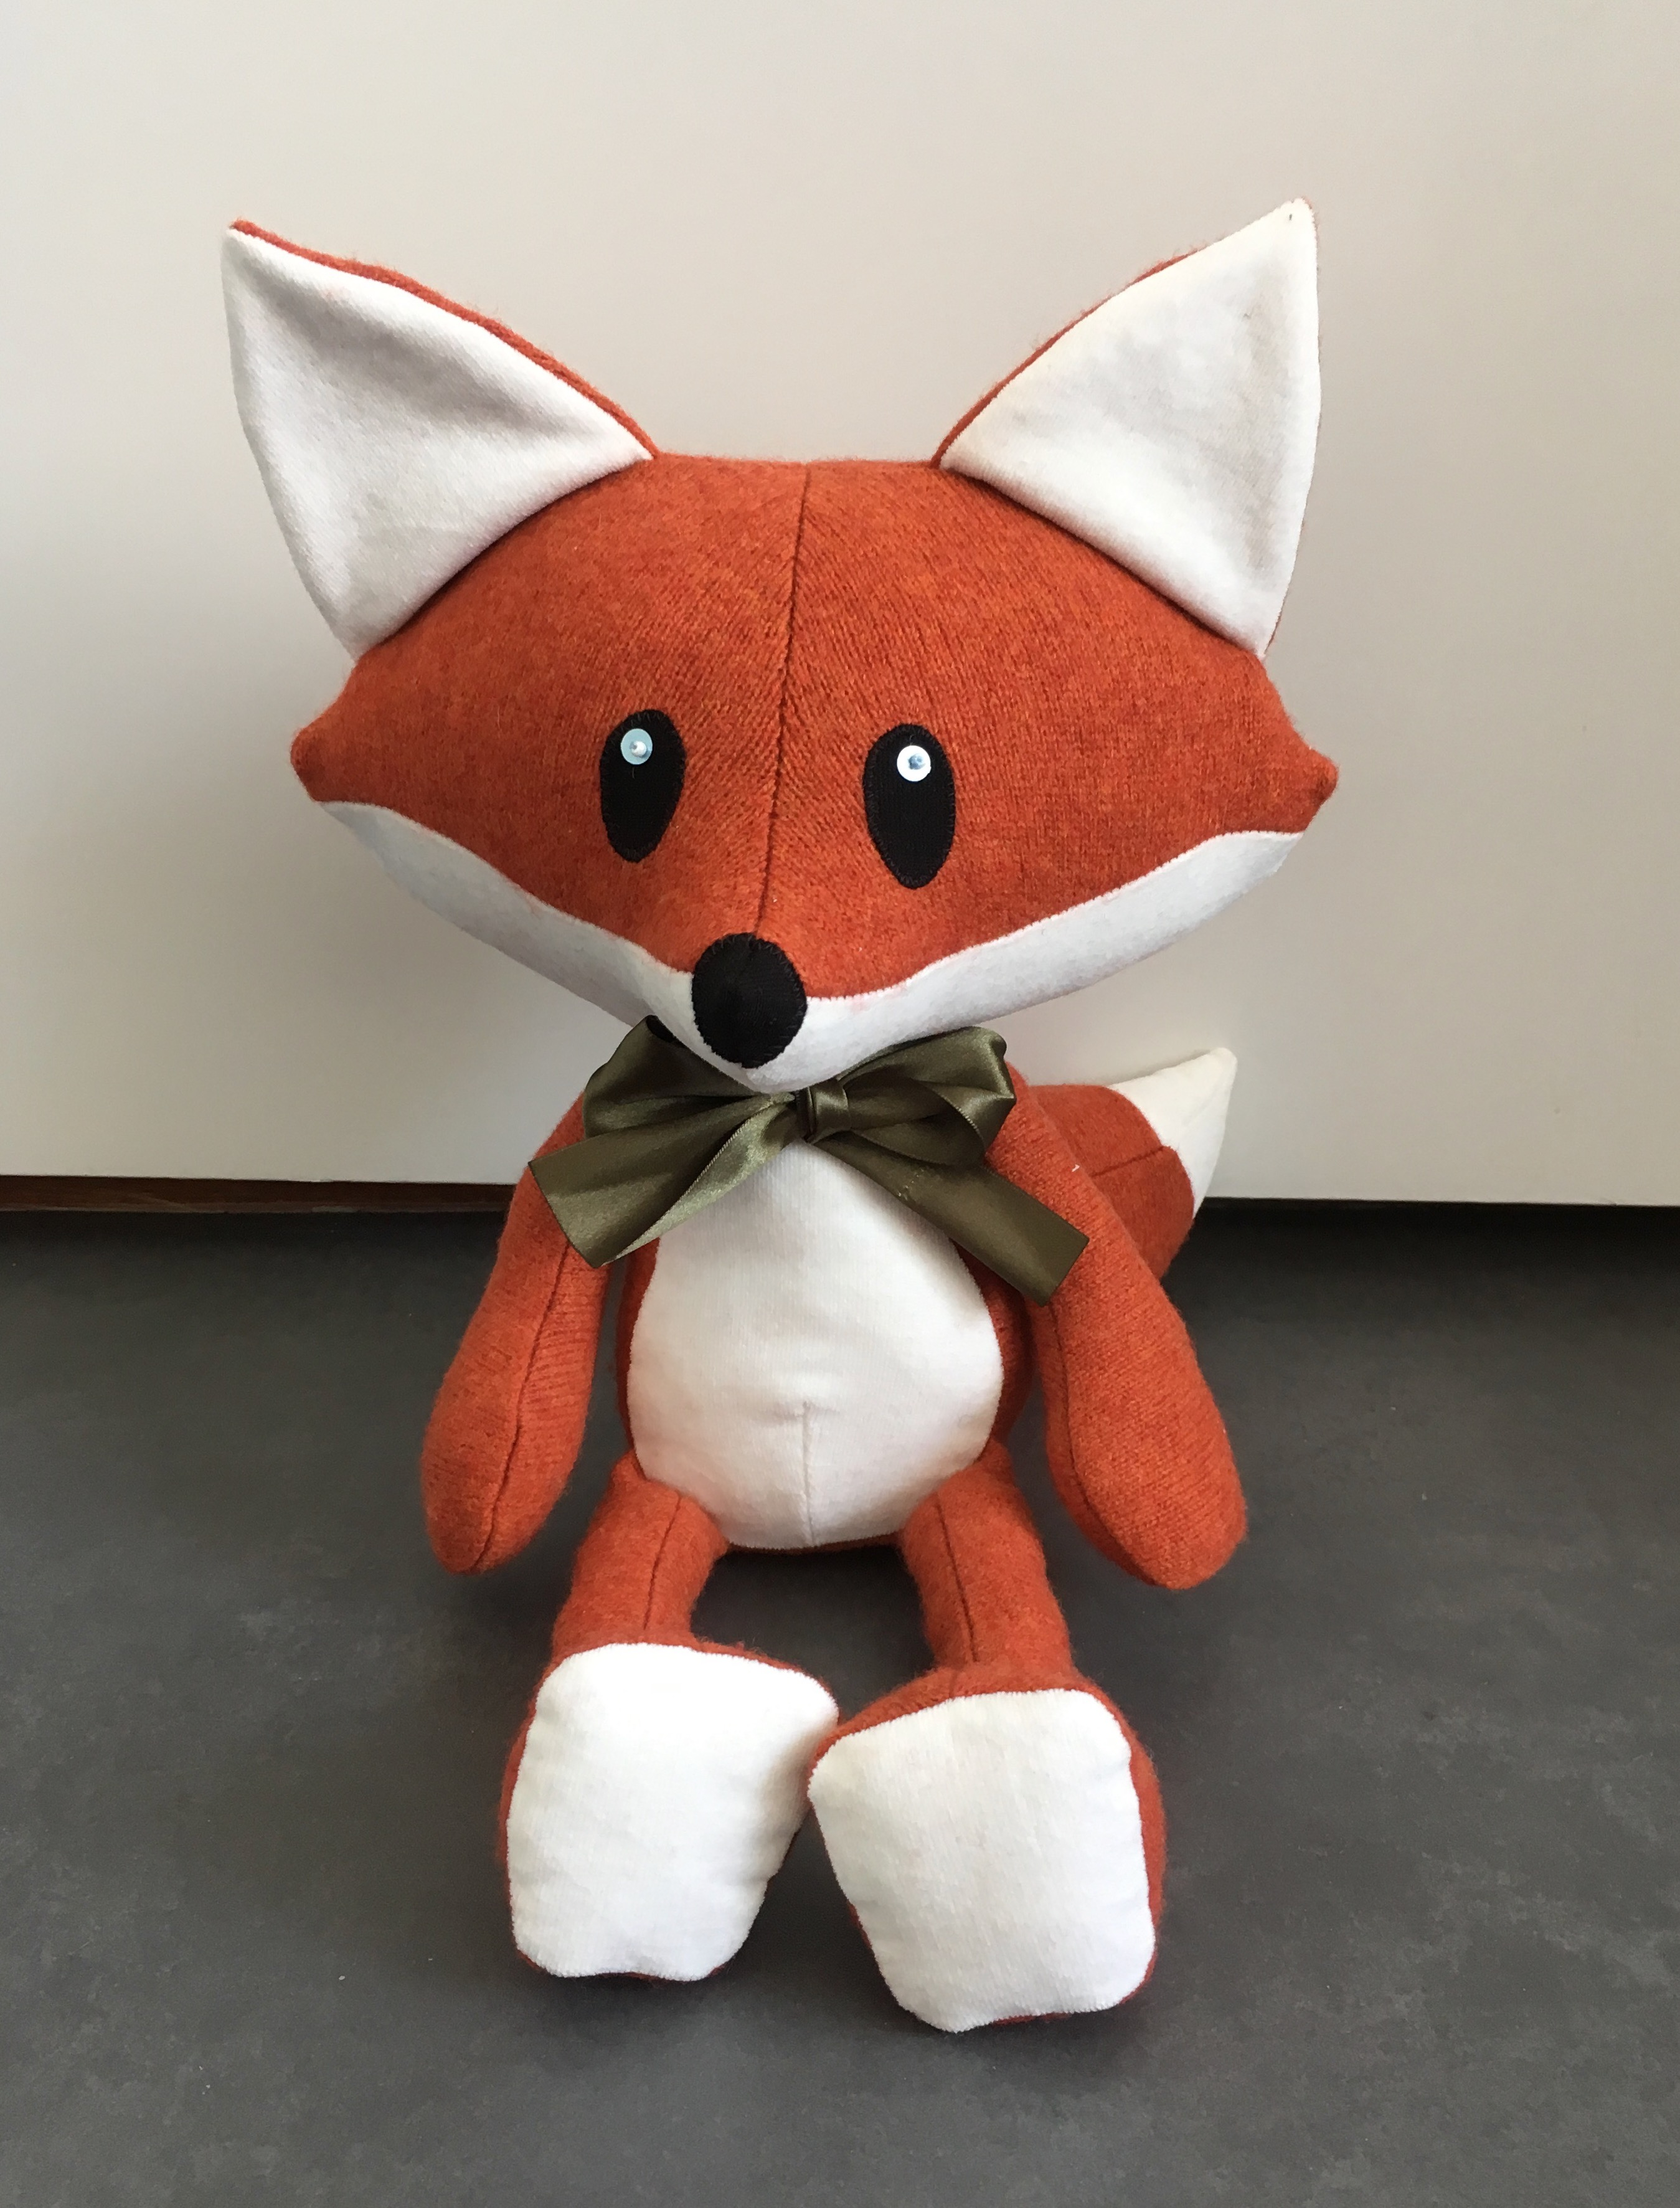 Misty's Whimsies Fox called Cherry